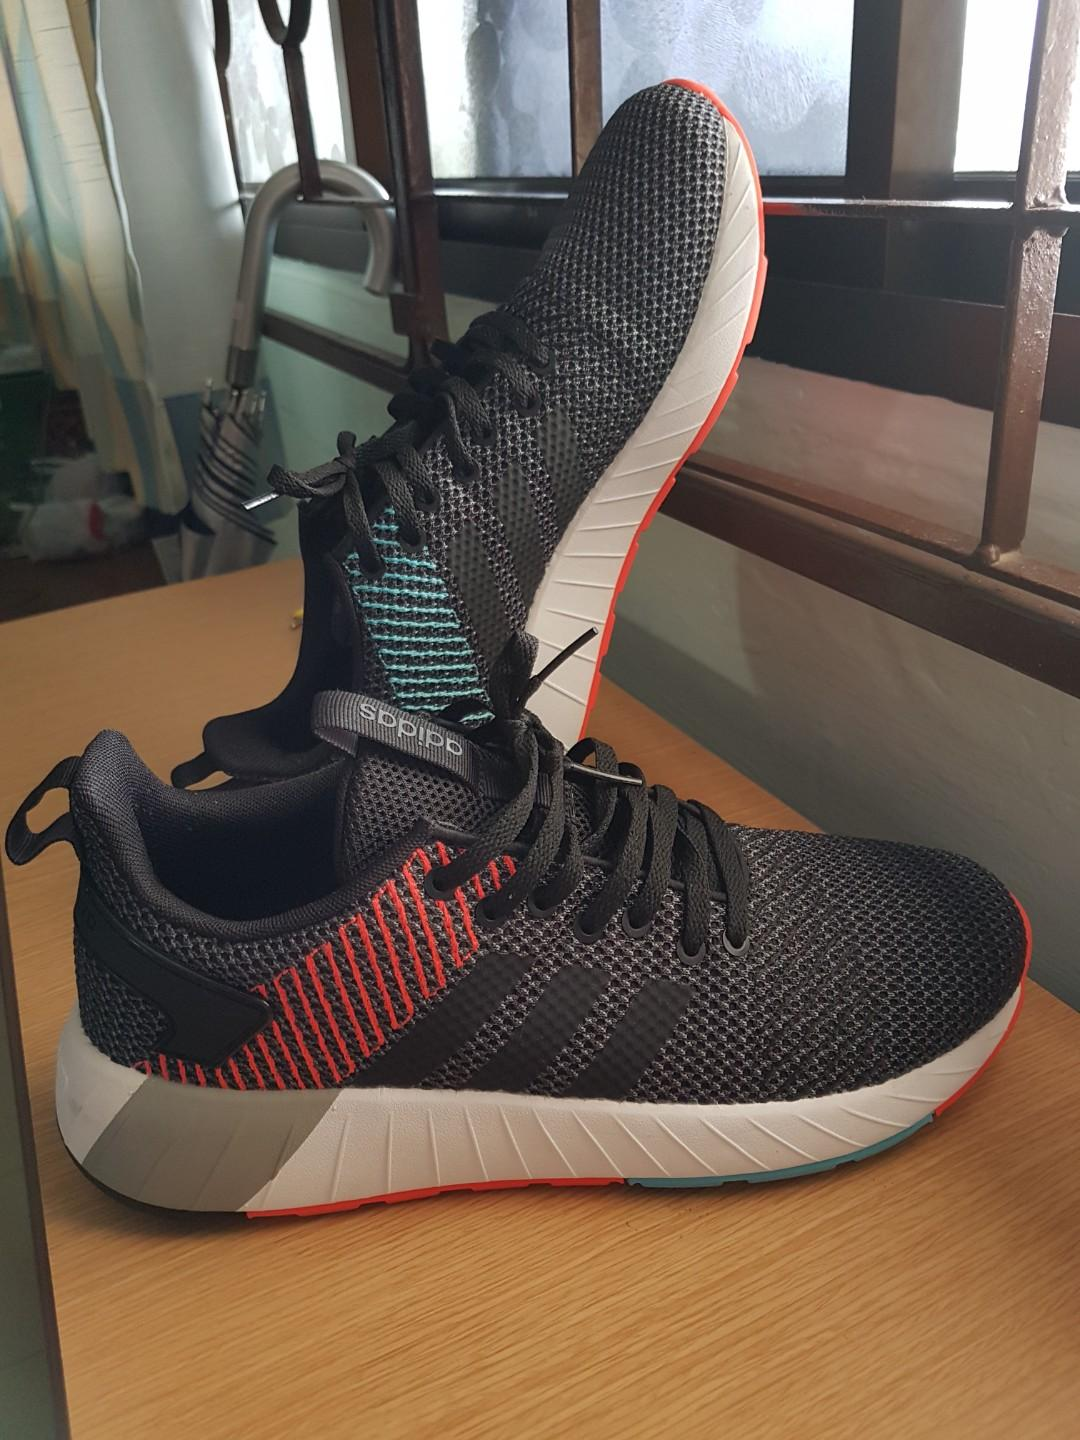 Adidas NEO Questar BYD Shoes, Men's